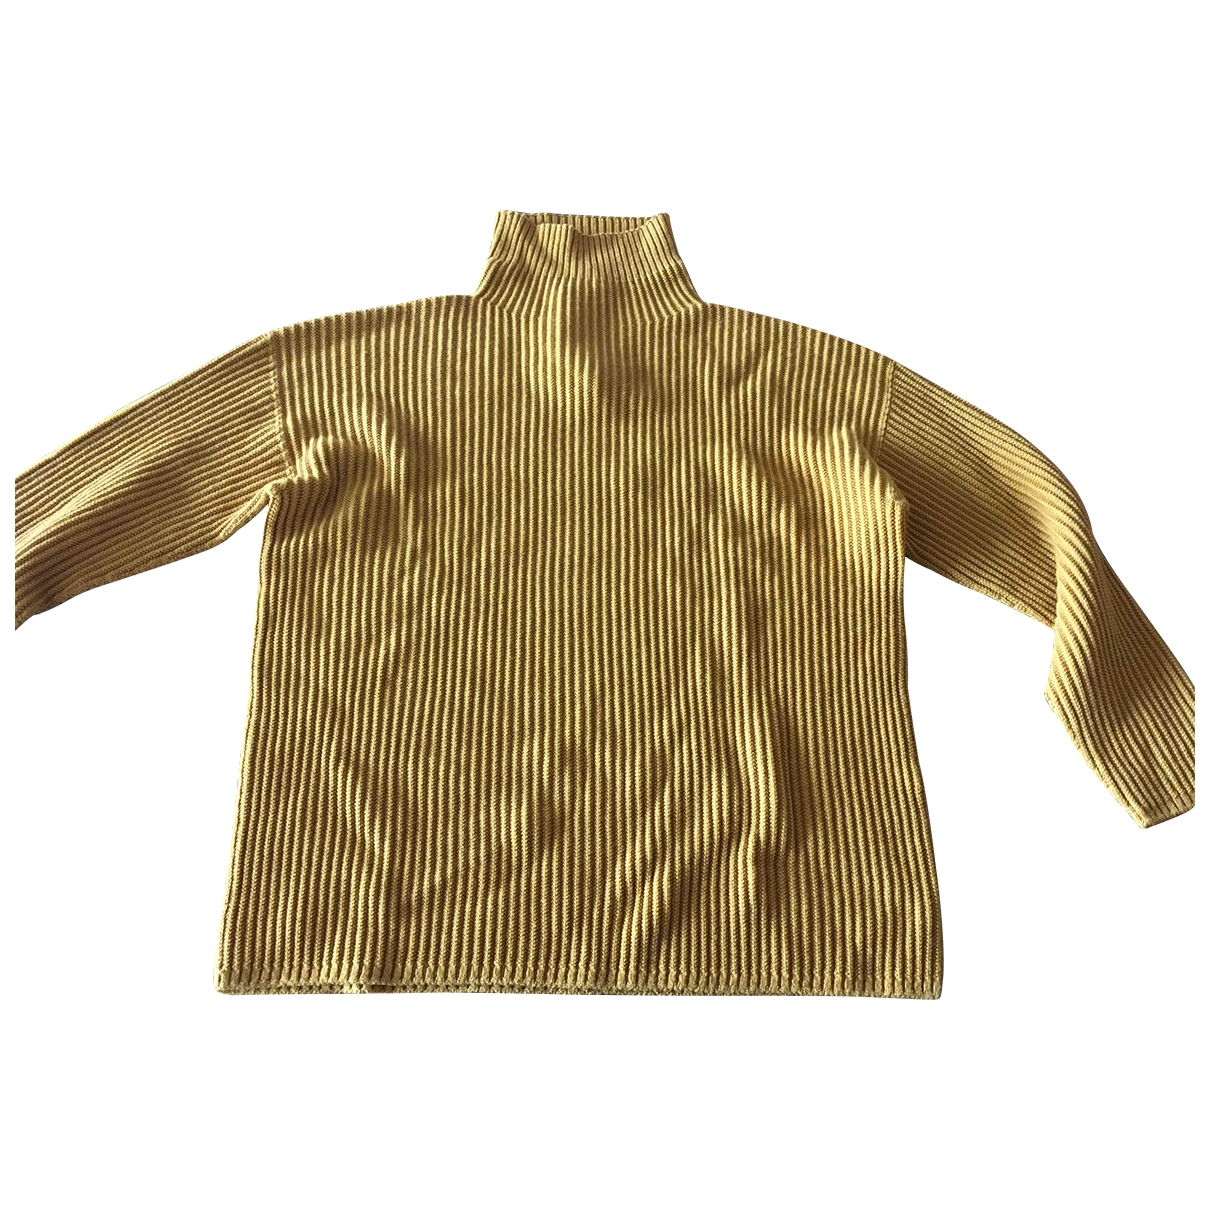 Max Mara \N Pullover in  Gelb Wolle